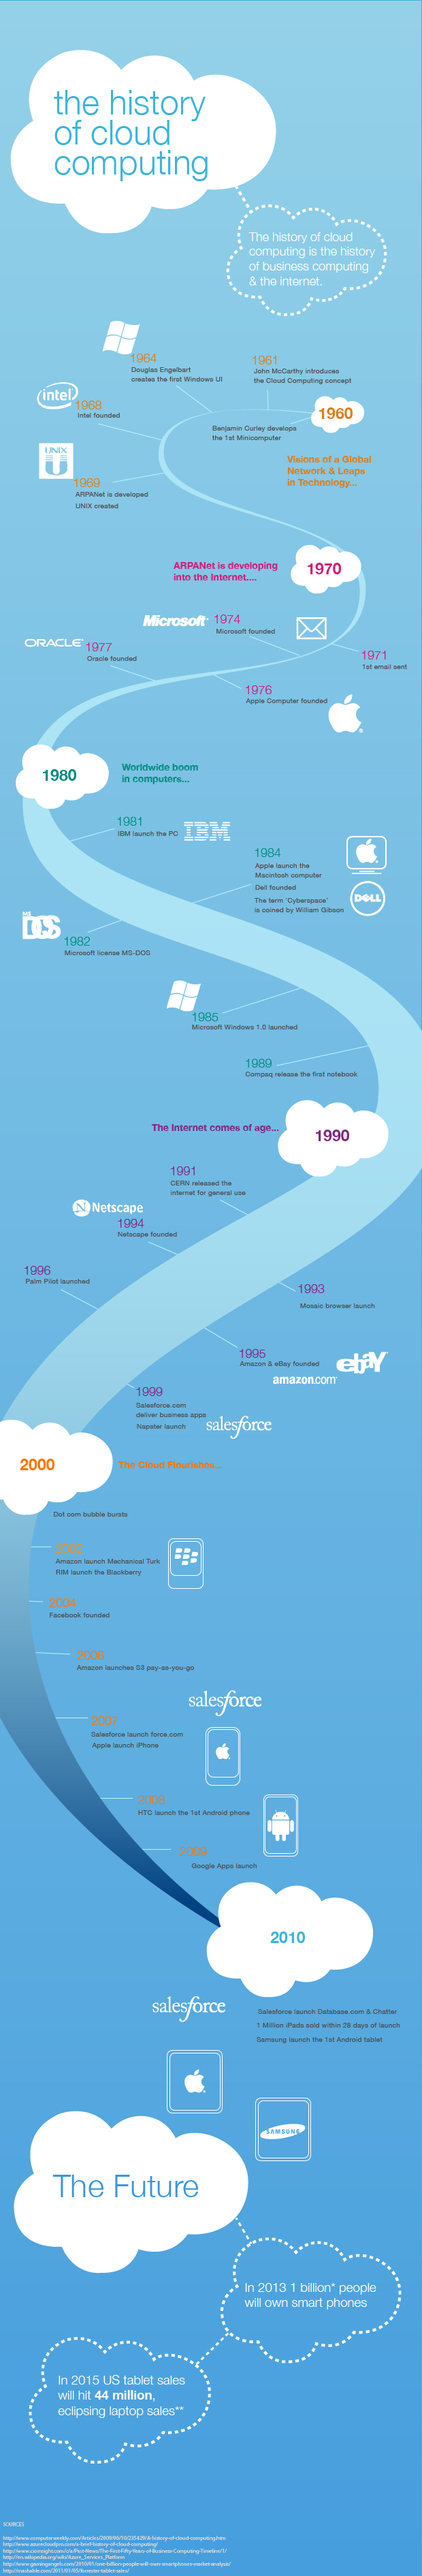 The history of cloud computing - Image source: Salesforce